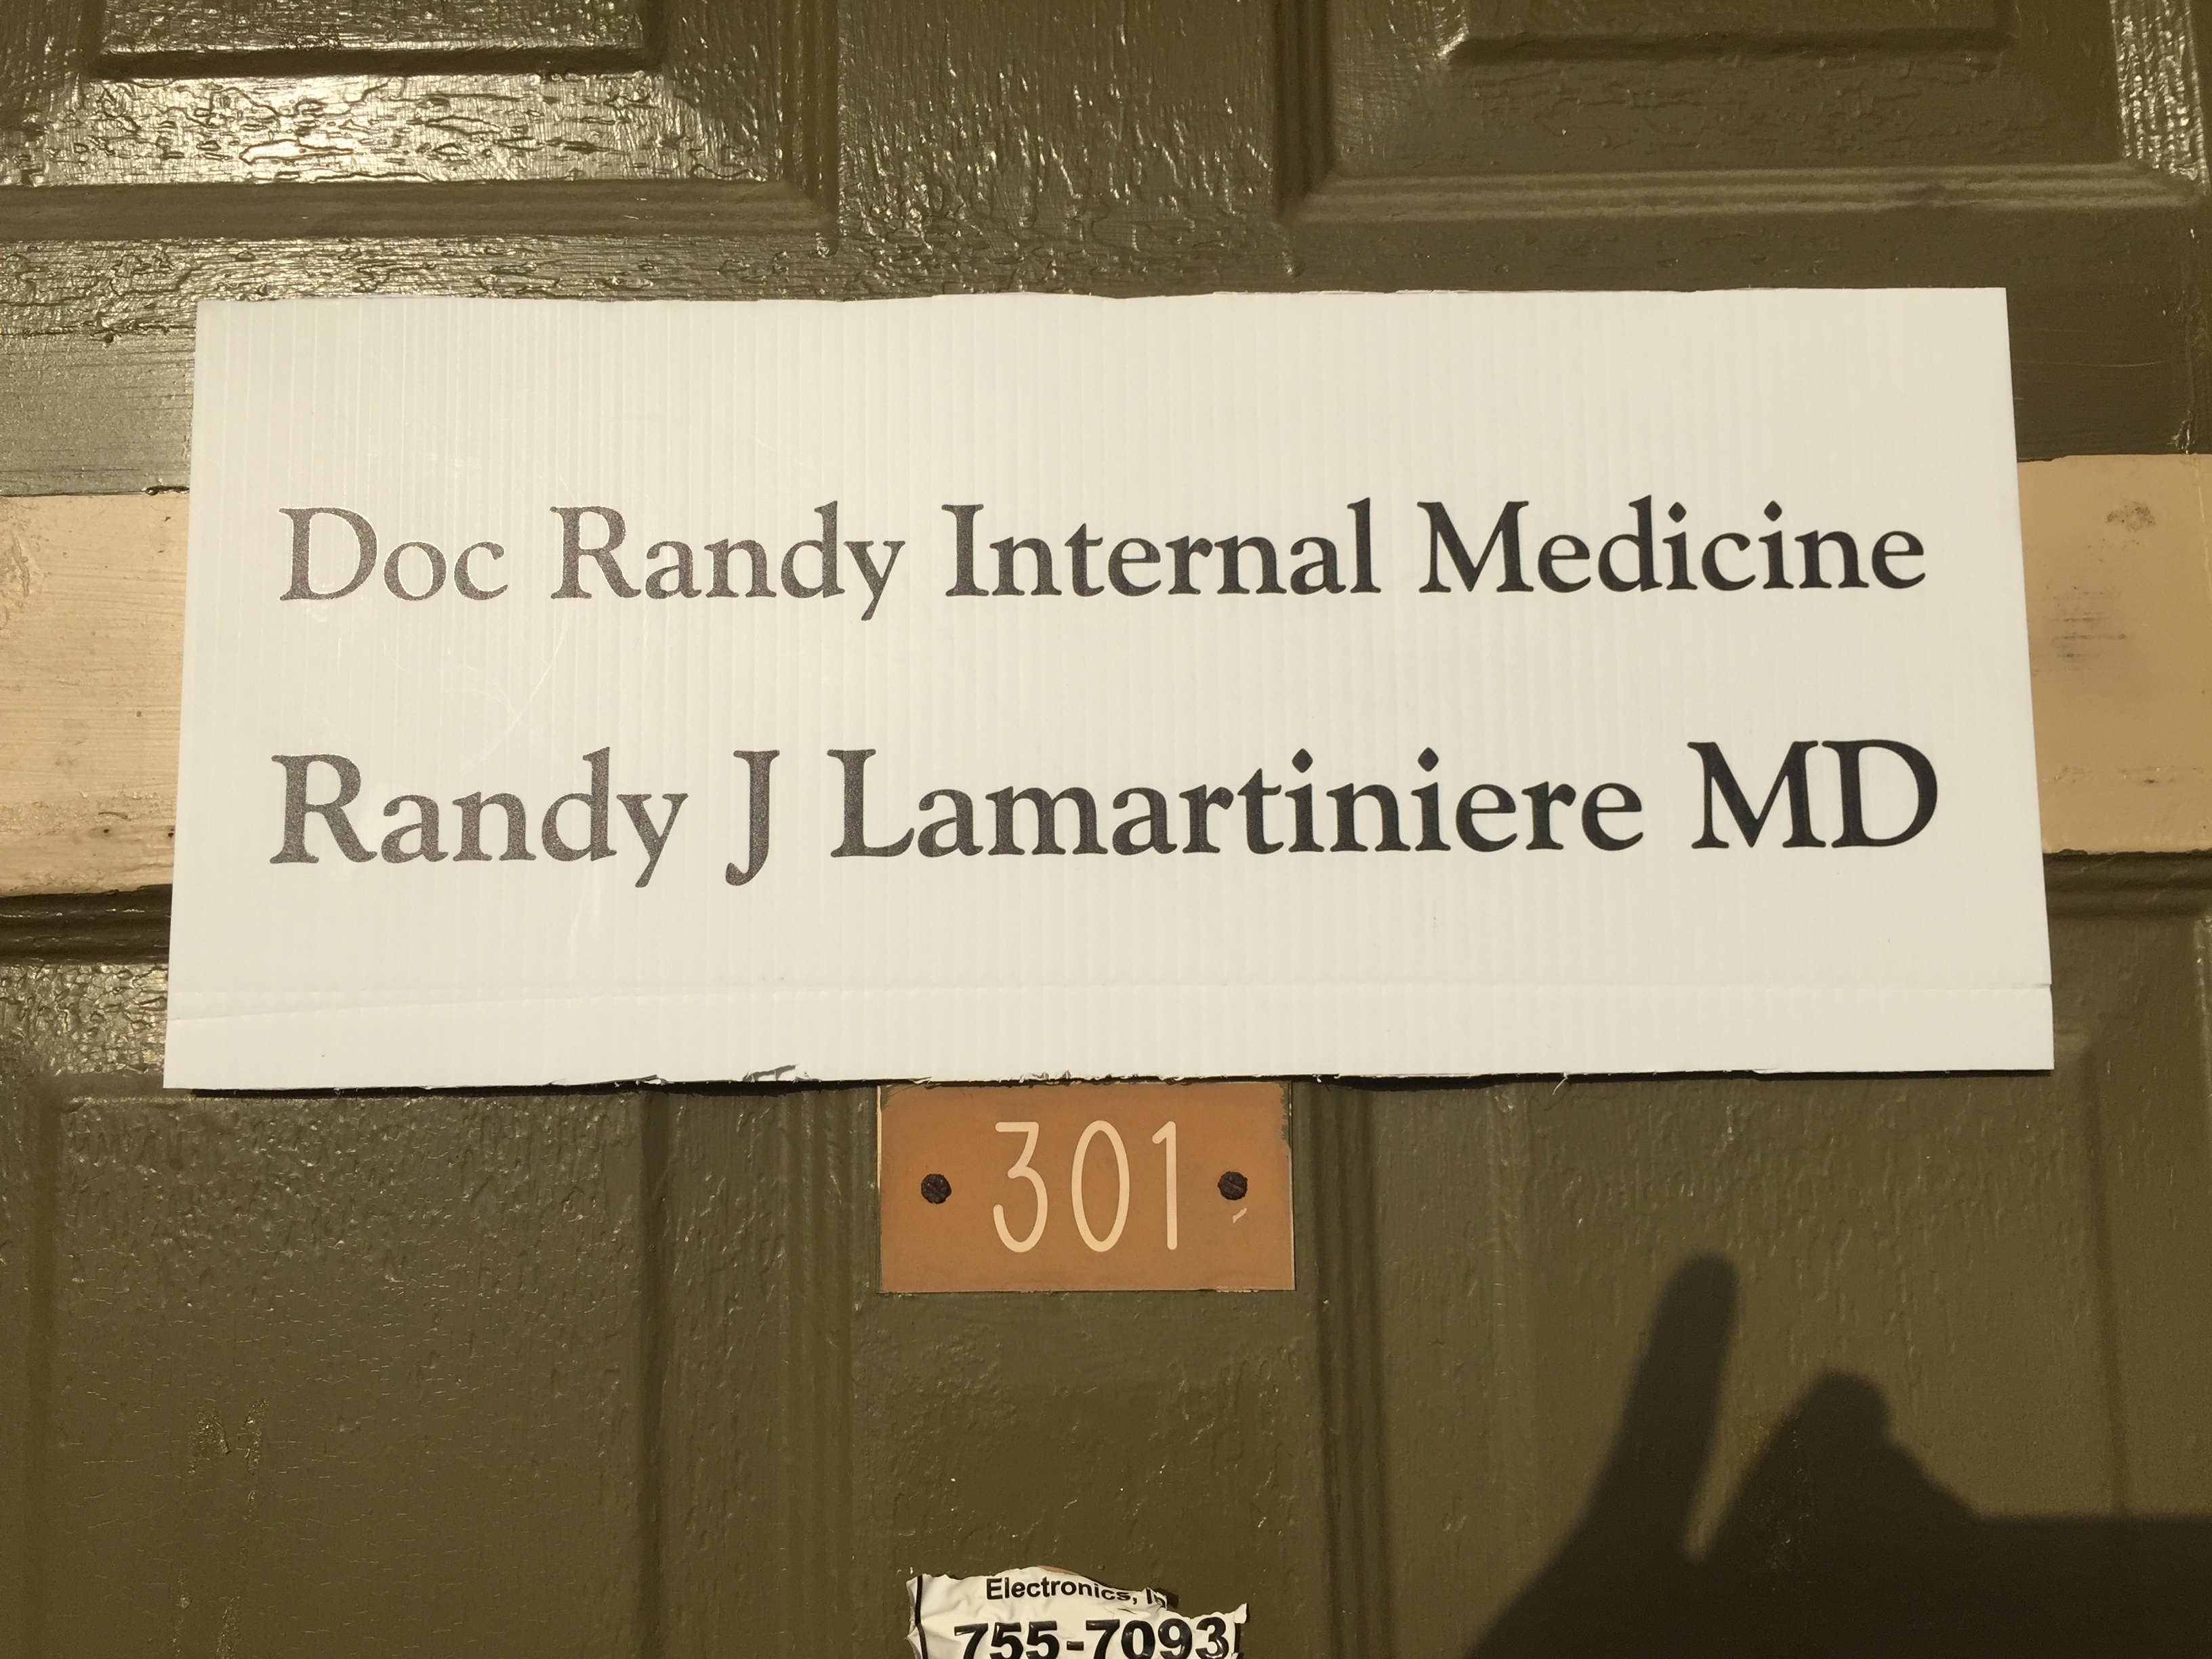 Randy Lamartiniere,Md image 1